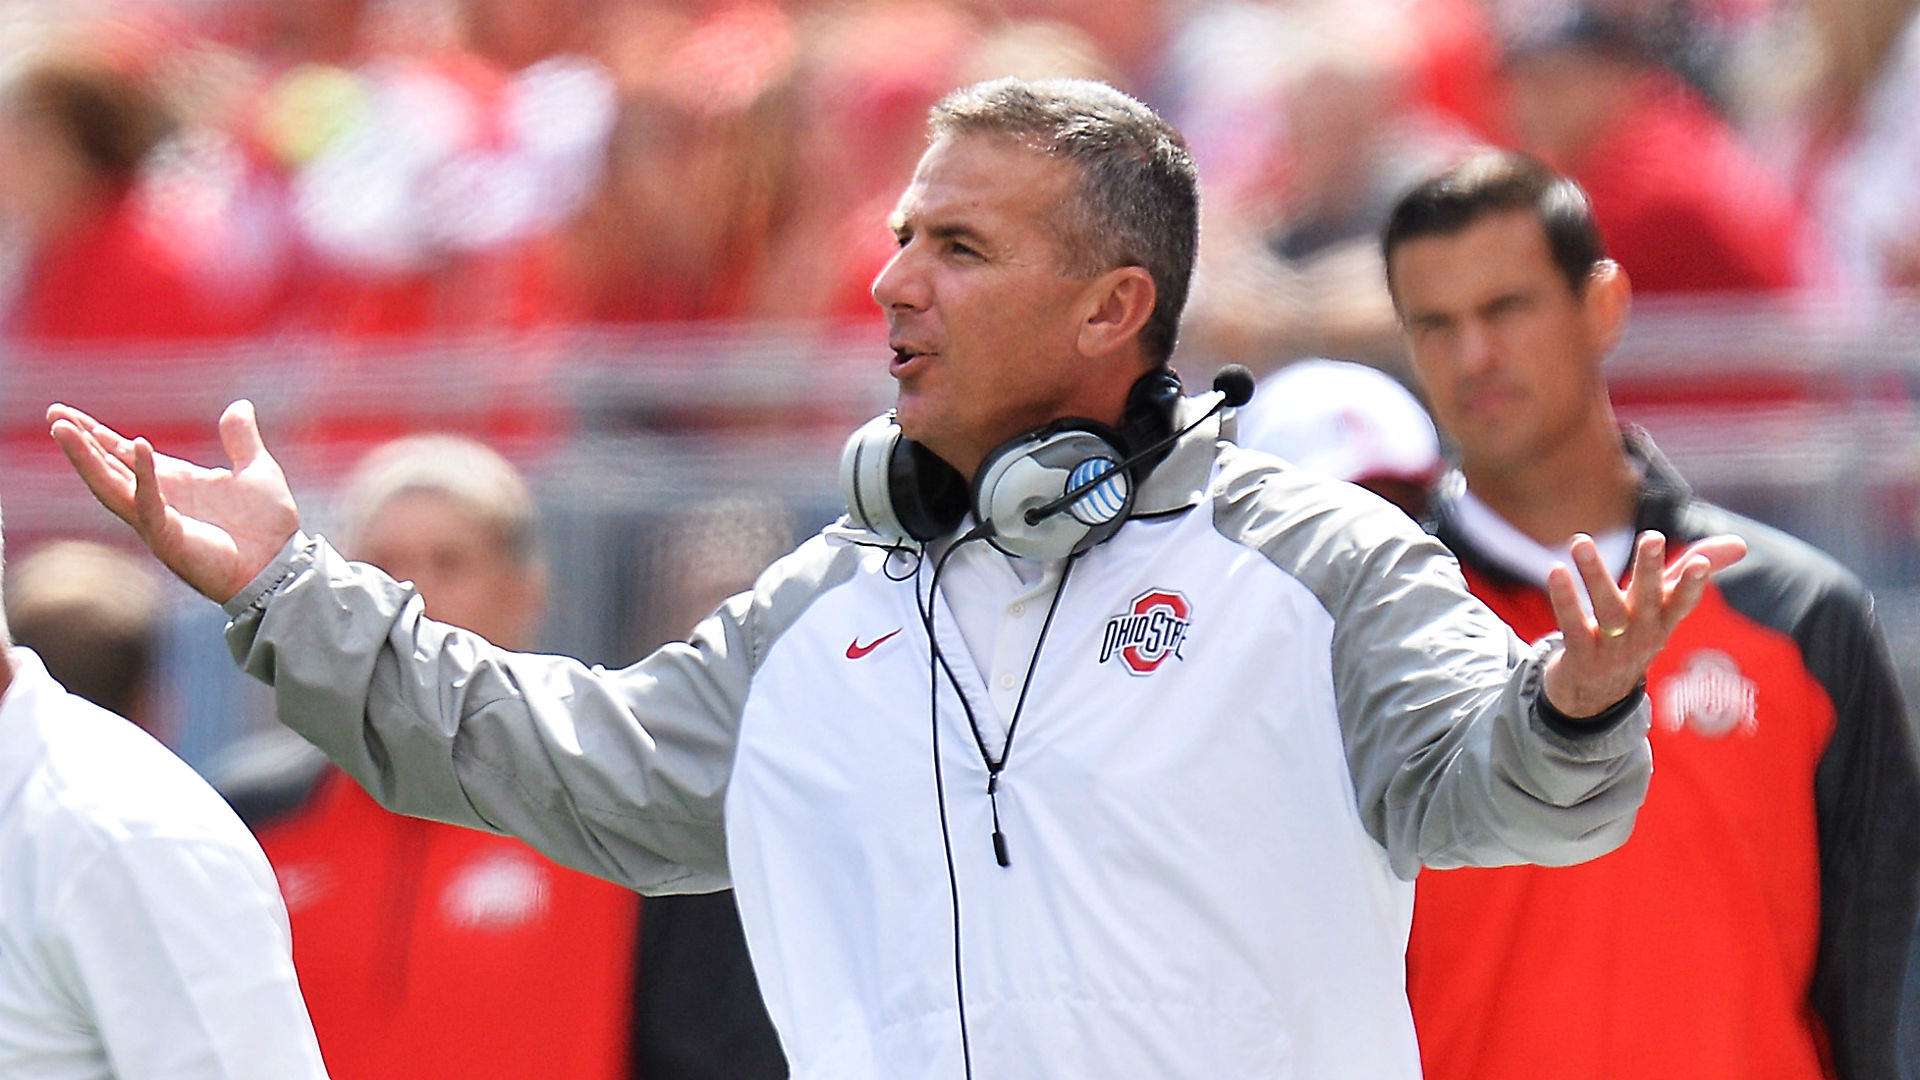 Urban Meyer on excuses by first-year coaches: 'They're your players'